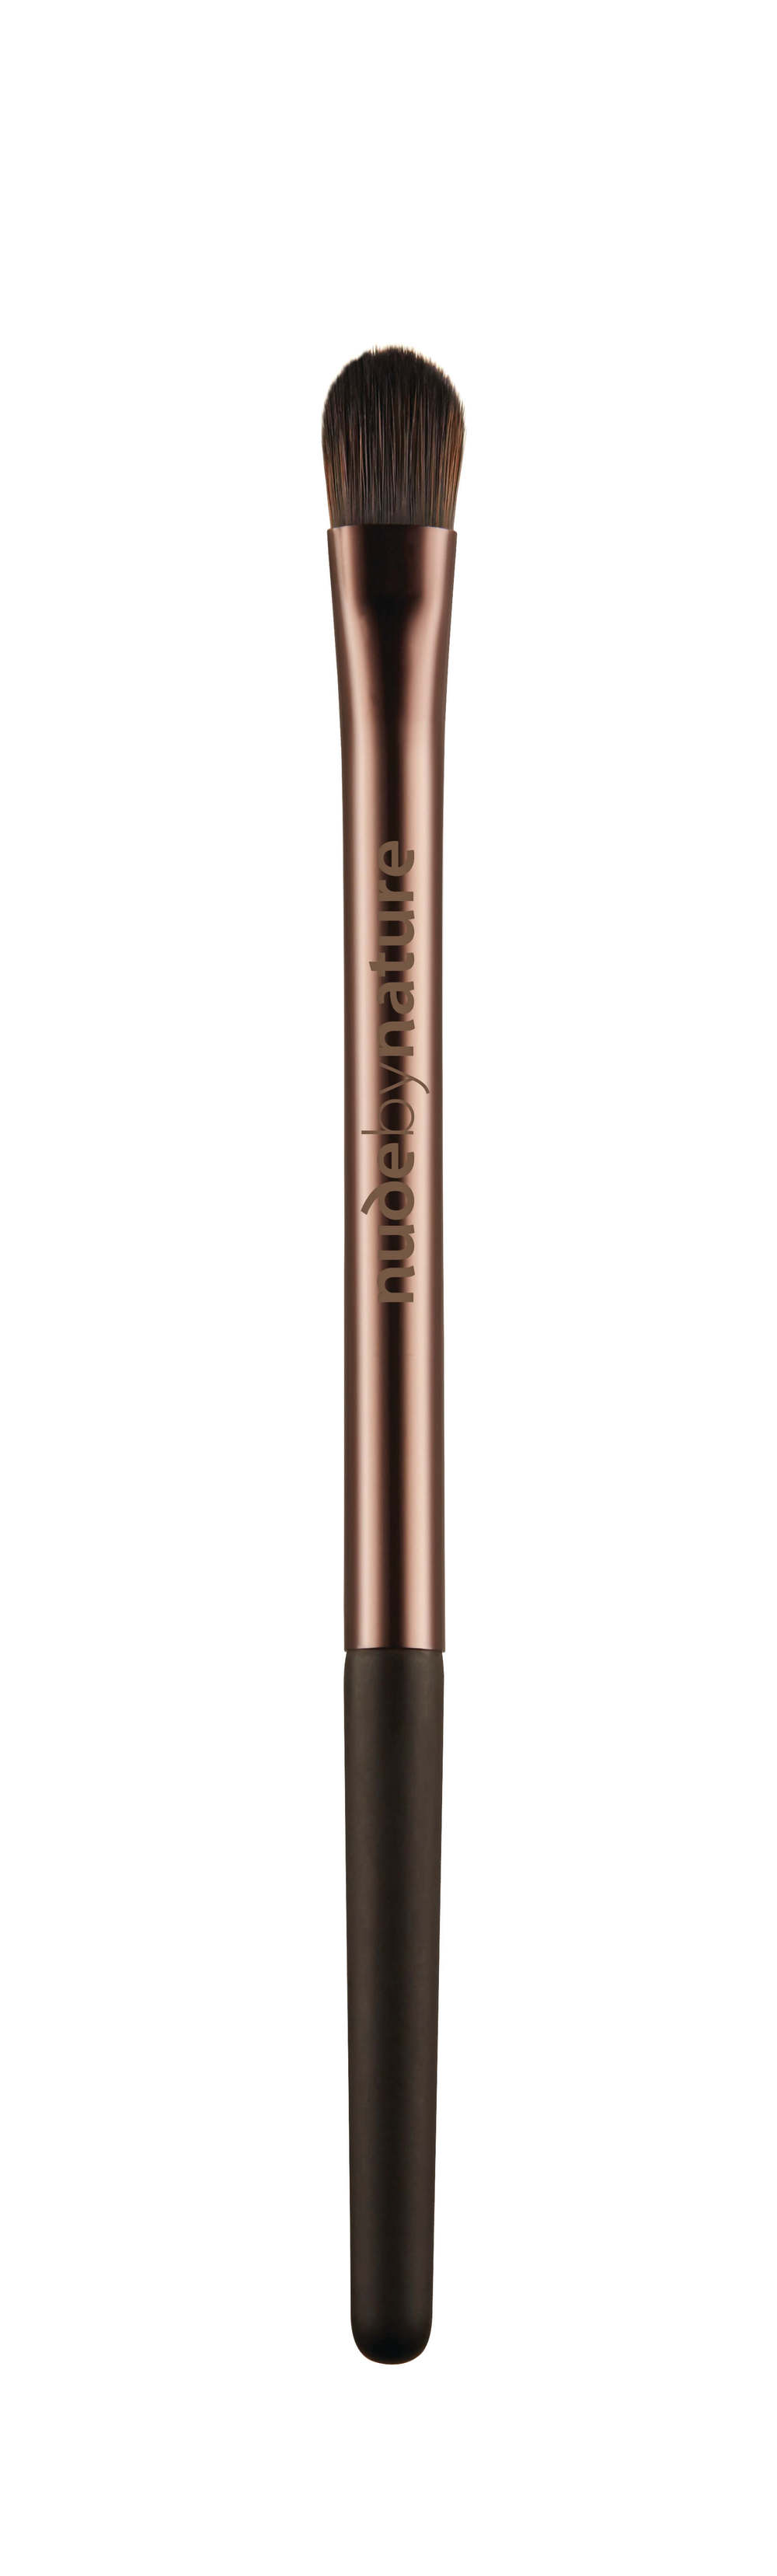 NBN_01 CONCEALER BRUSH.jpg